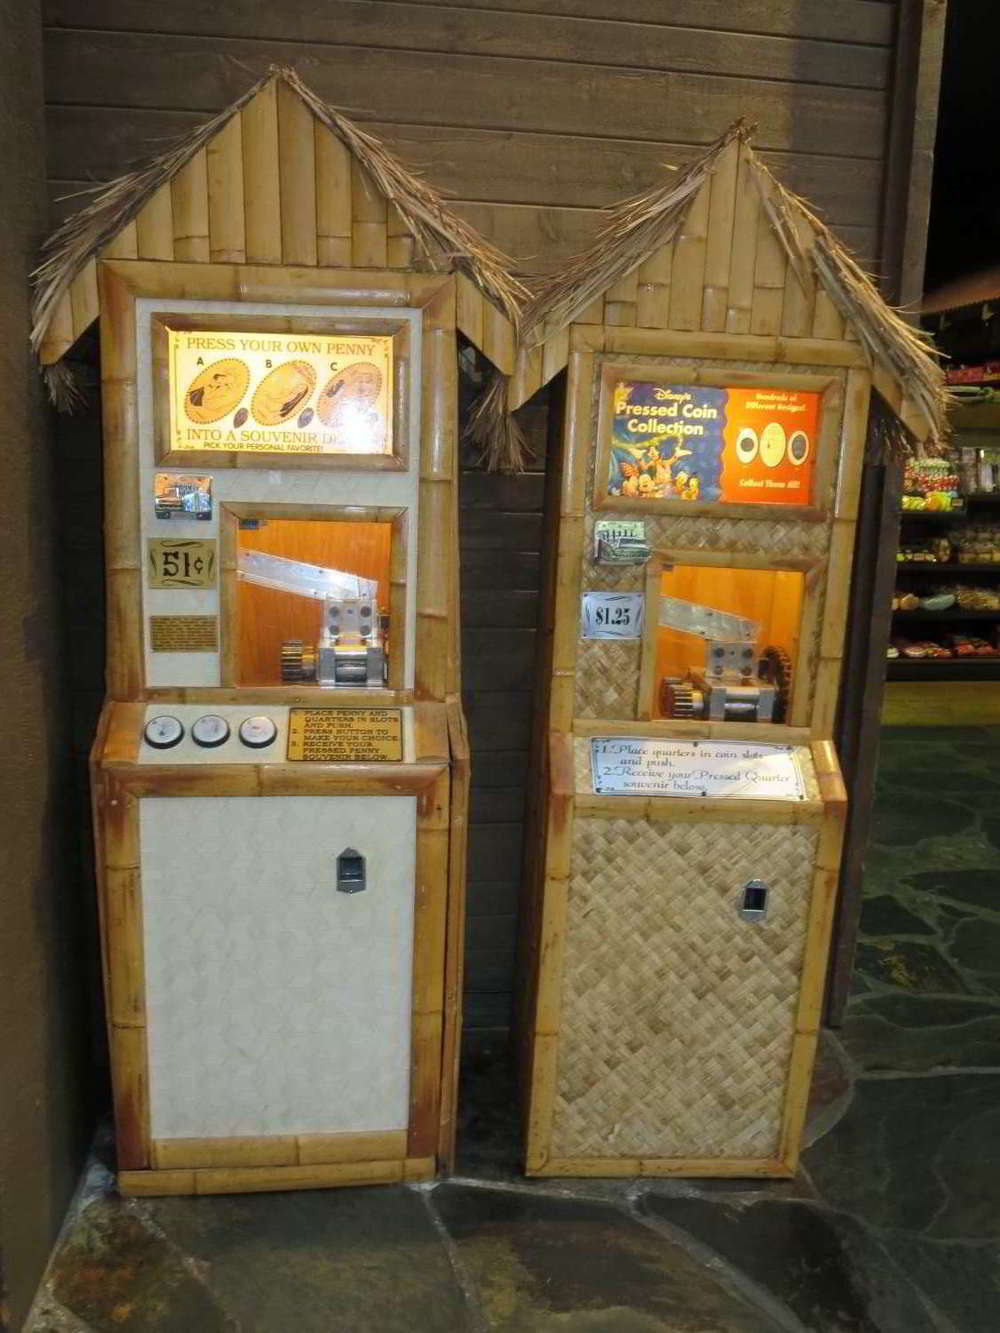 Disneys-Polynesian-Village-Pressed-Penny-Machines.jpg